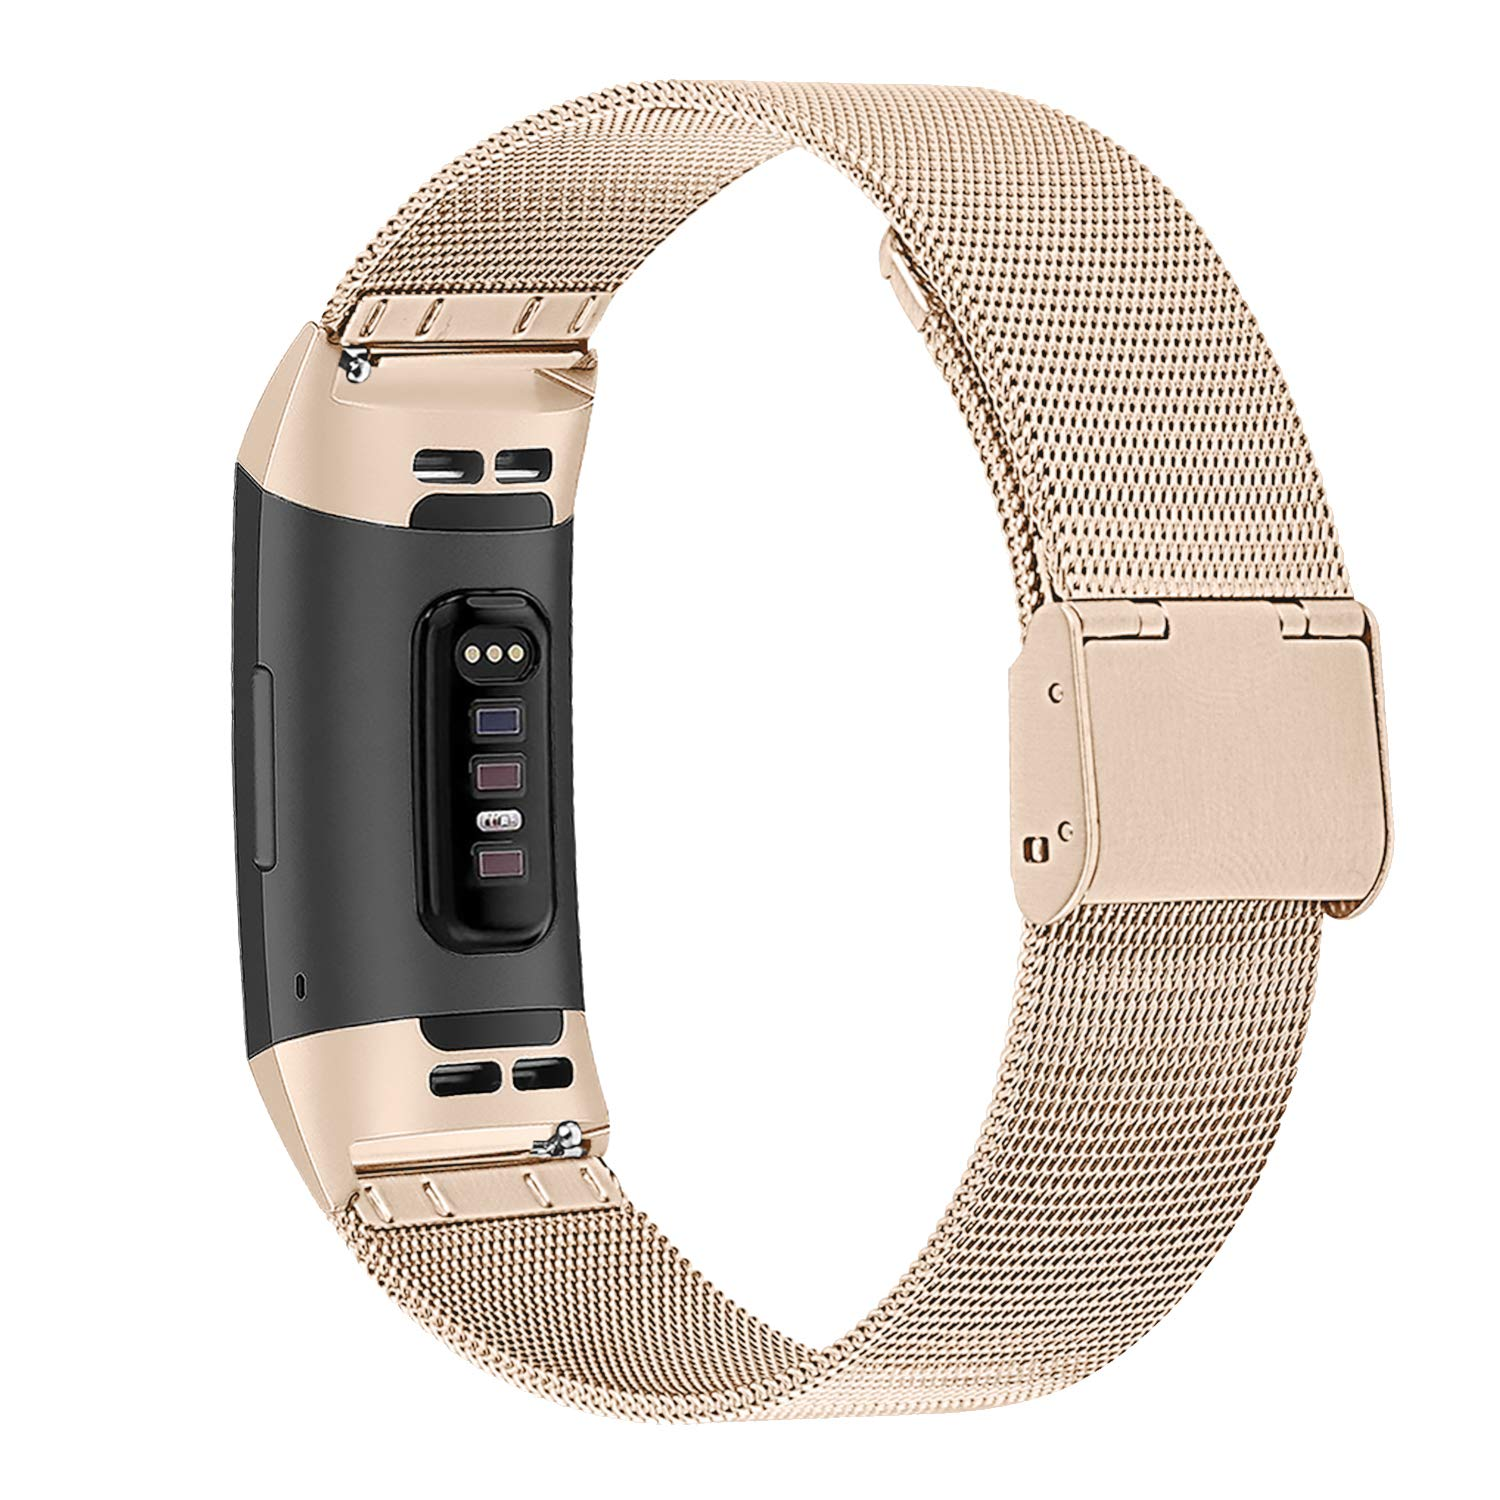 SYOSIN f/ür Fitbit Charge 3 Armband Edelstahl Armband mit Verstellbarer Schnalle Elegance Accessoires B/änder f/ür Fitbit Charge 3 Fitness Tracker